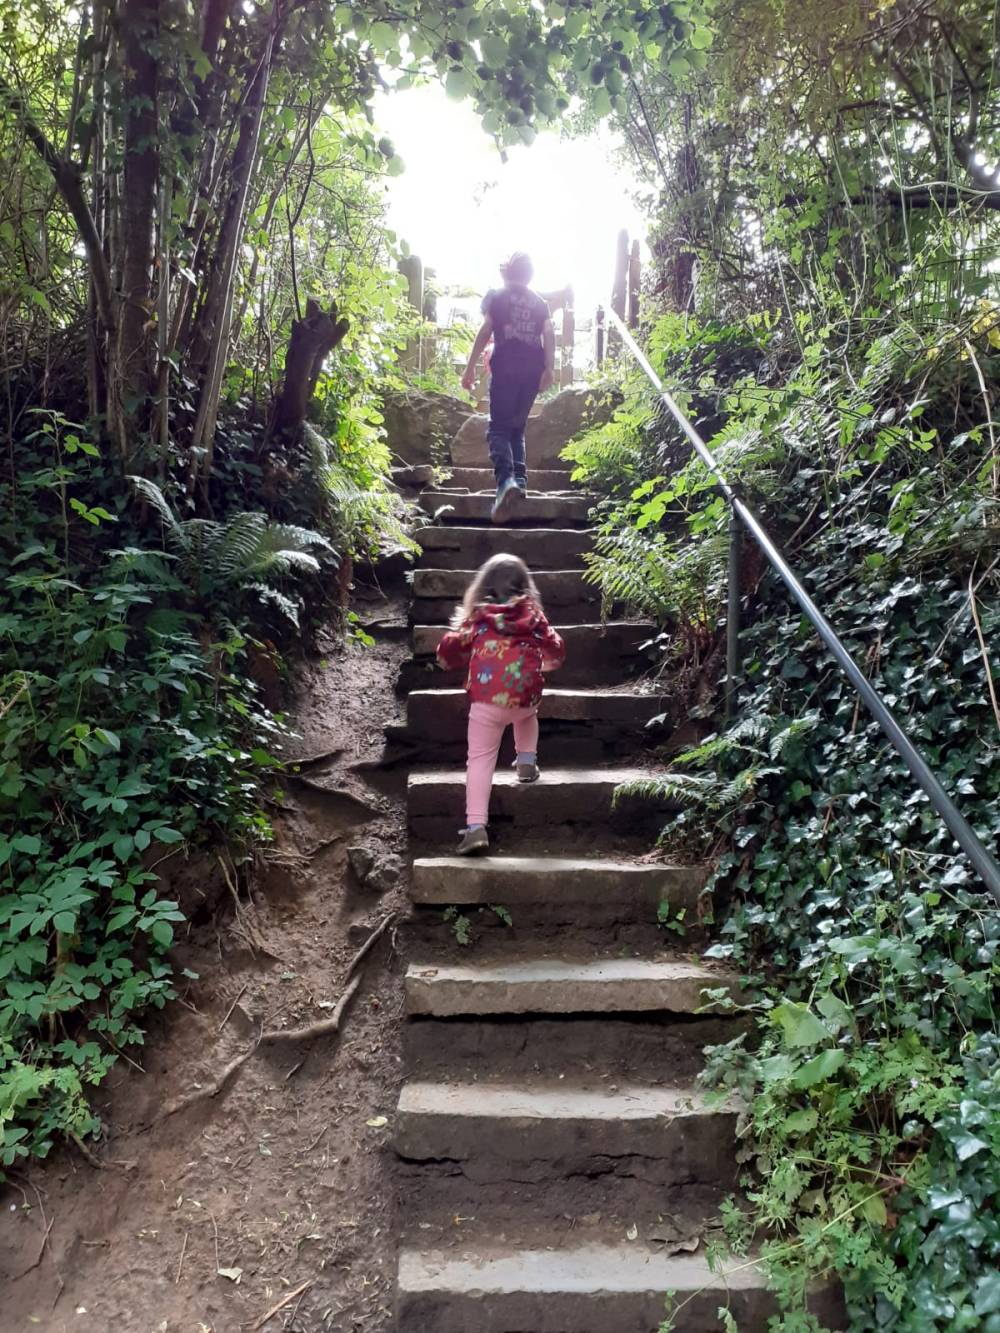 Stone steps with children